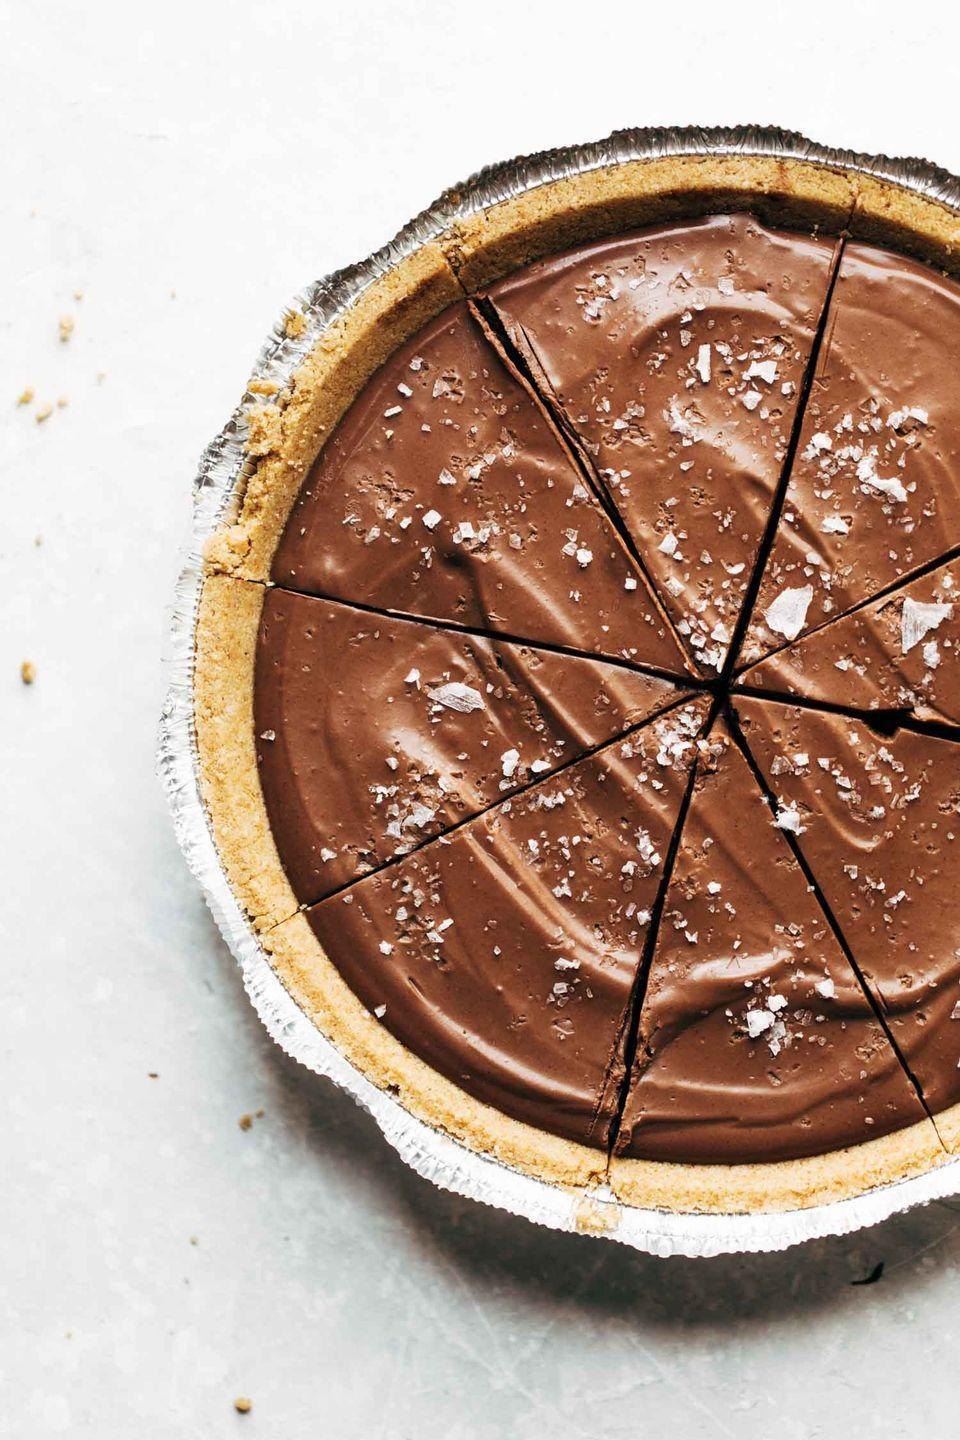 "<p>There's a reason this pie is called ""mind-blowing""—you won't even know it's vegan because of its super-creamy chocolate filling. </p><p><strong>Get the recipe at <a href=""https://pinchofyum.com/vegan-chocolate-pie"" rel=""nofollow noopener"" target=""_blank"" data-ylk=""slk:Pinch of Yum"" class=""link rapid-noclick-resp"">Pinch of Yum</a>.</strong></p><p><strong><a class=""link rapid-noclick-resp"" href=""https://www.amazon.com/Hamilton-Beach-Functions-Dishwasher-58148A/dp/B00EI7DPI0/?tag=syn-yahoo-20&ascsubtag=%5Bartid%7C10050.g.1138%5Bsrc%7Cyahoo-us"" rel=""nofollow noopener"" target=""_blank"" data-ylk=""slk:SHOP BLENDERS"">SHOP BLENDERS</a><br></strong></p>"